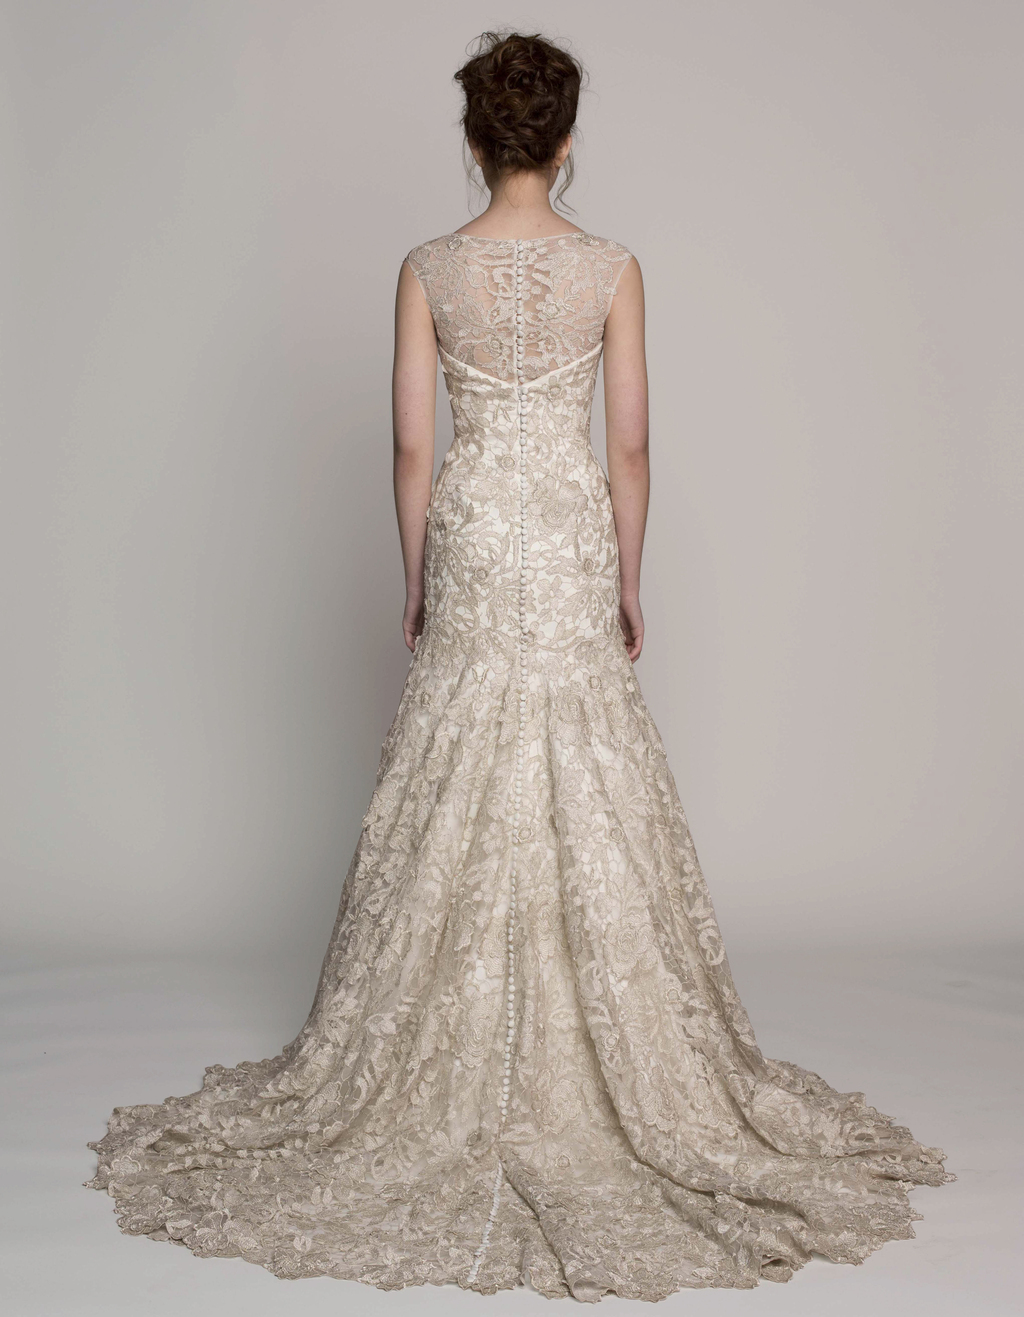 Kelly-faetanini-wedding-dress-2014-spring-bridal-gown-collection-nikola.full